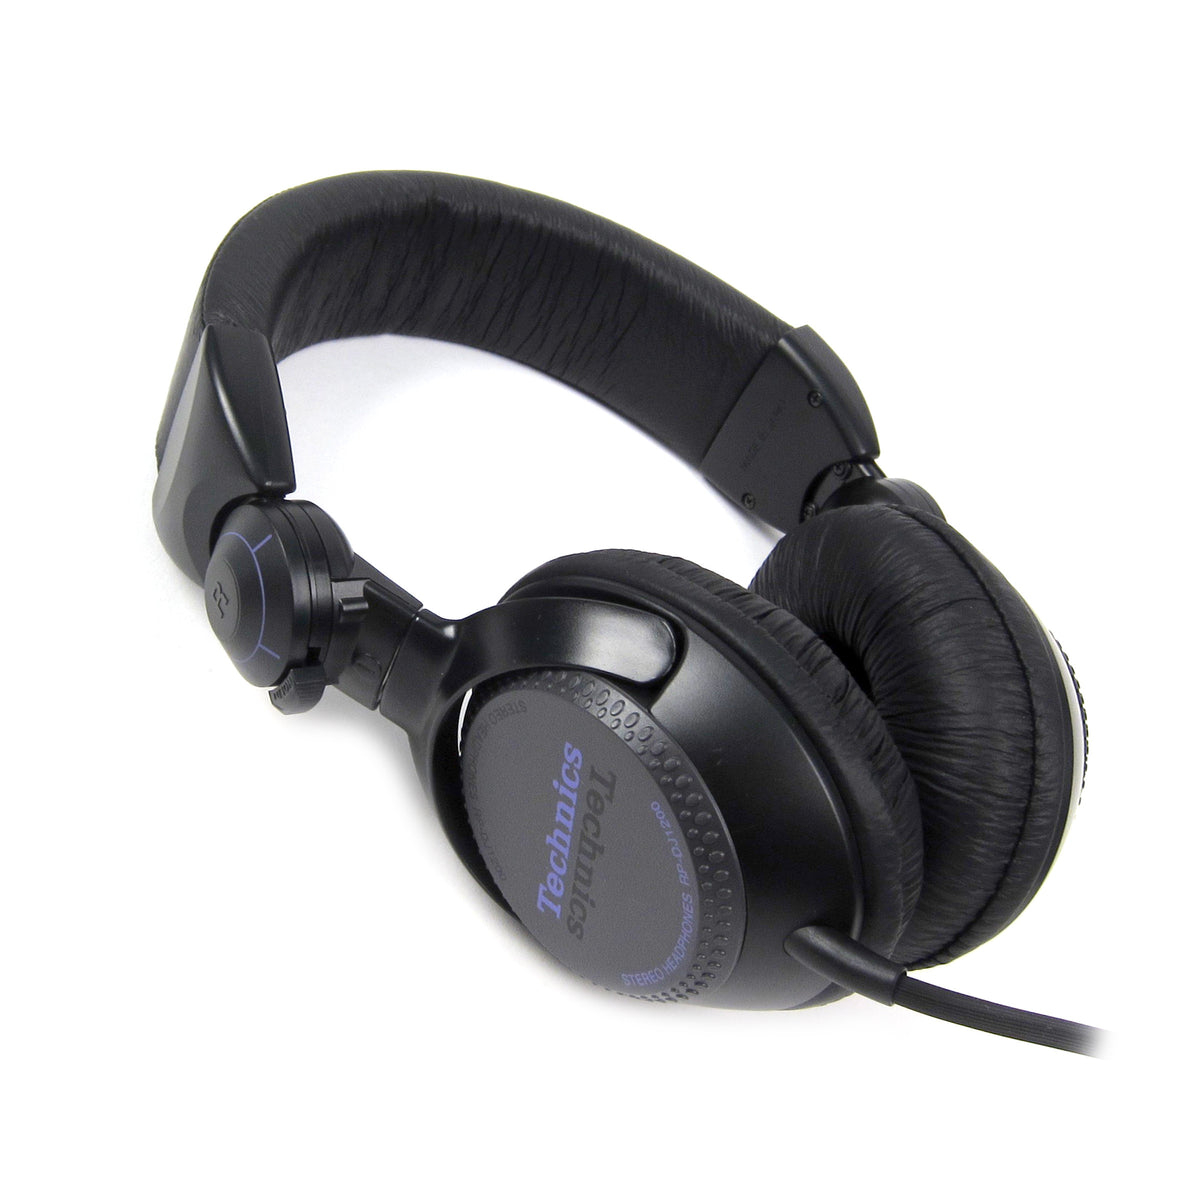 Technics: RP-DJ1200E-K Headphones - Black